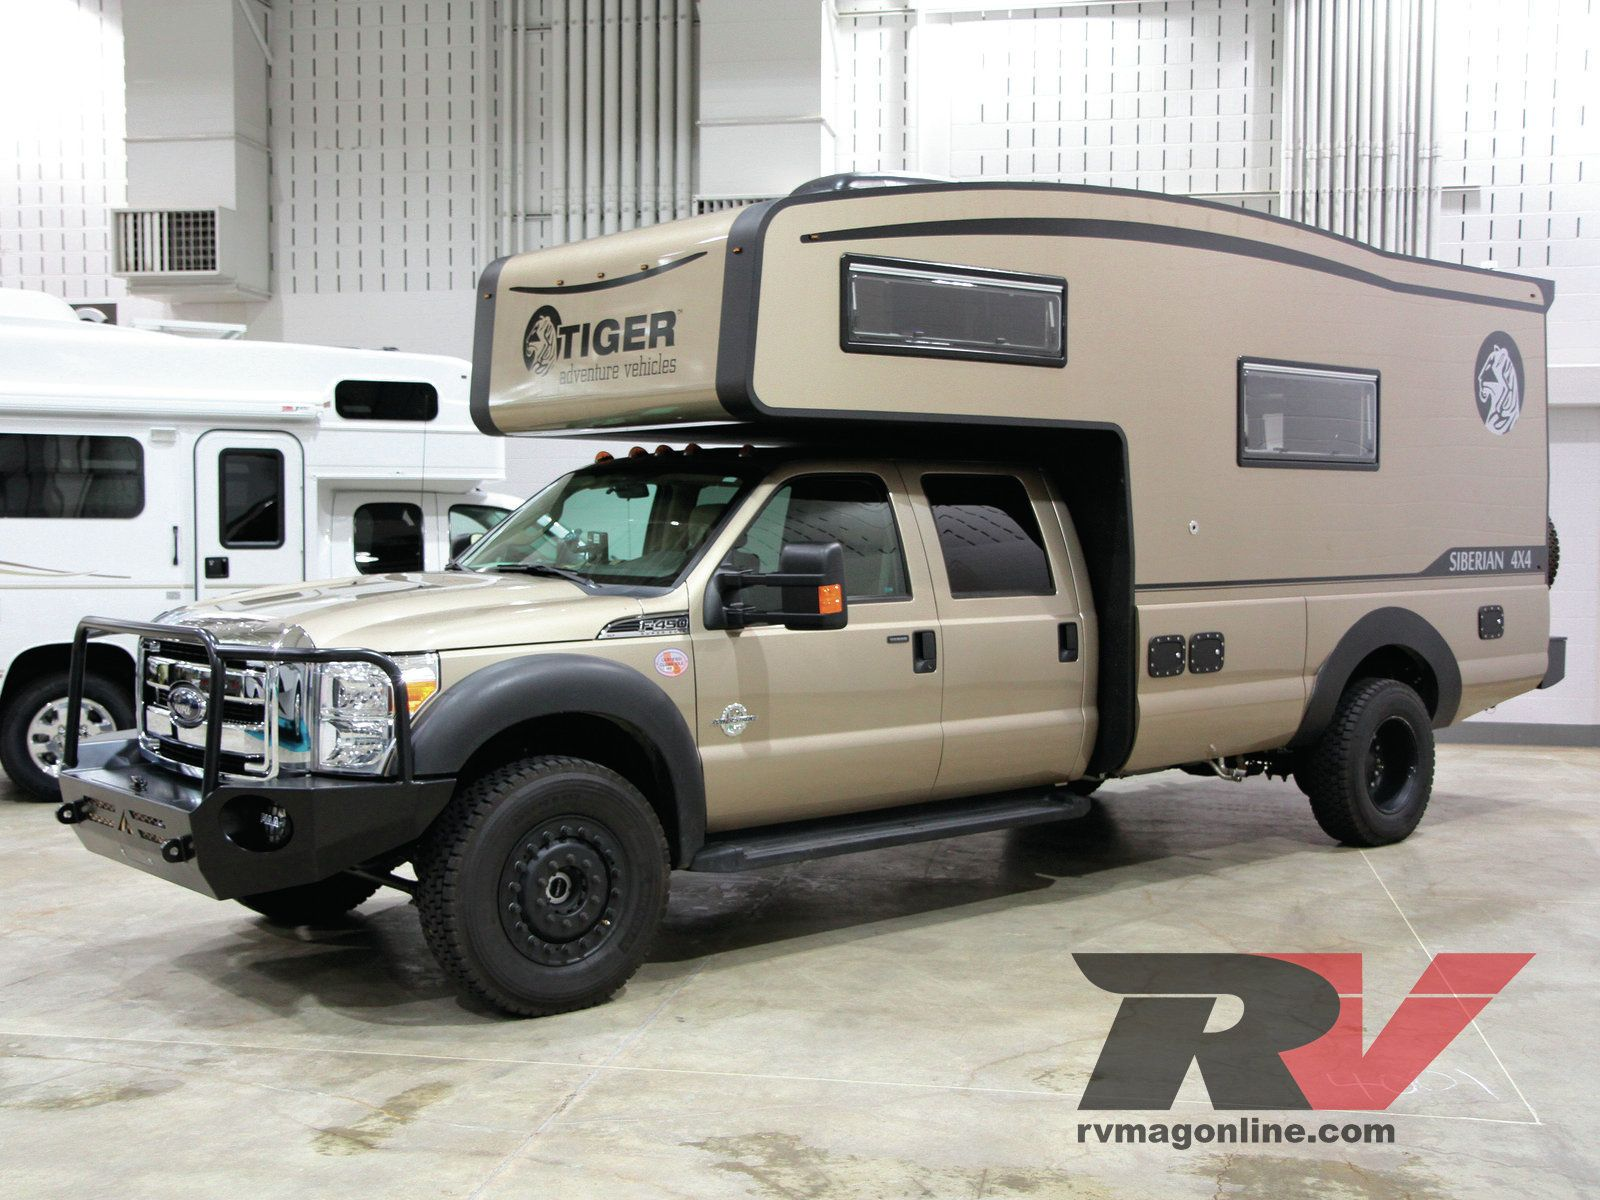 Formula for fun fmcas 87th show recreational vehicles